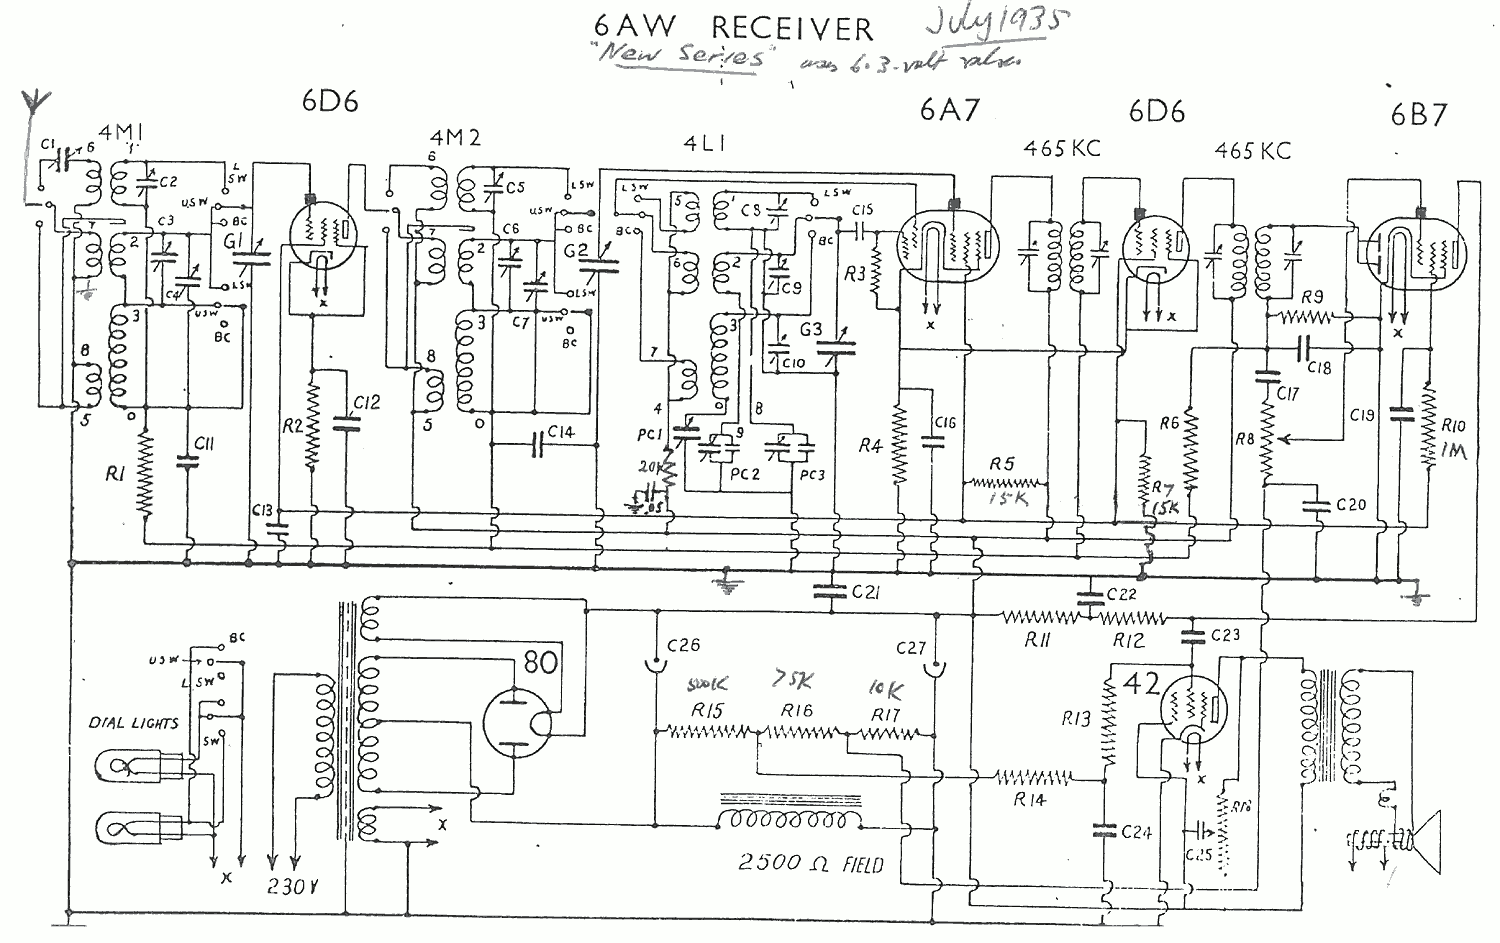 1935 Collier and Beale State - Radion - Etc model 6AW new version schematic